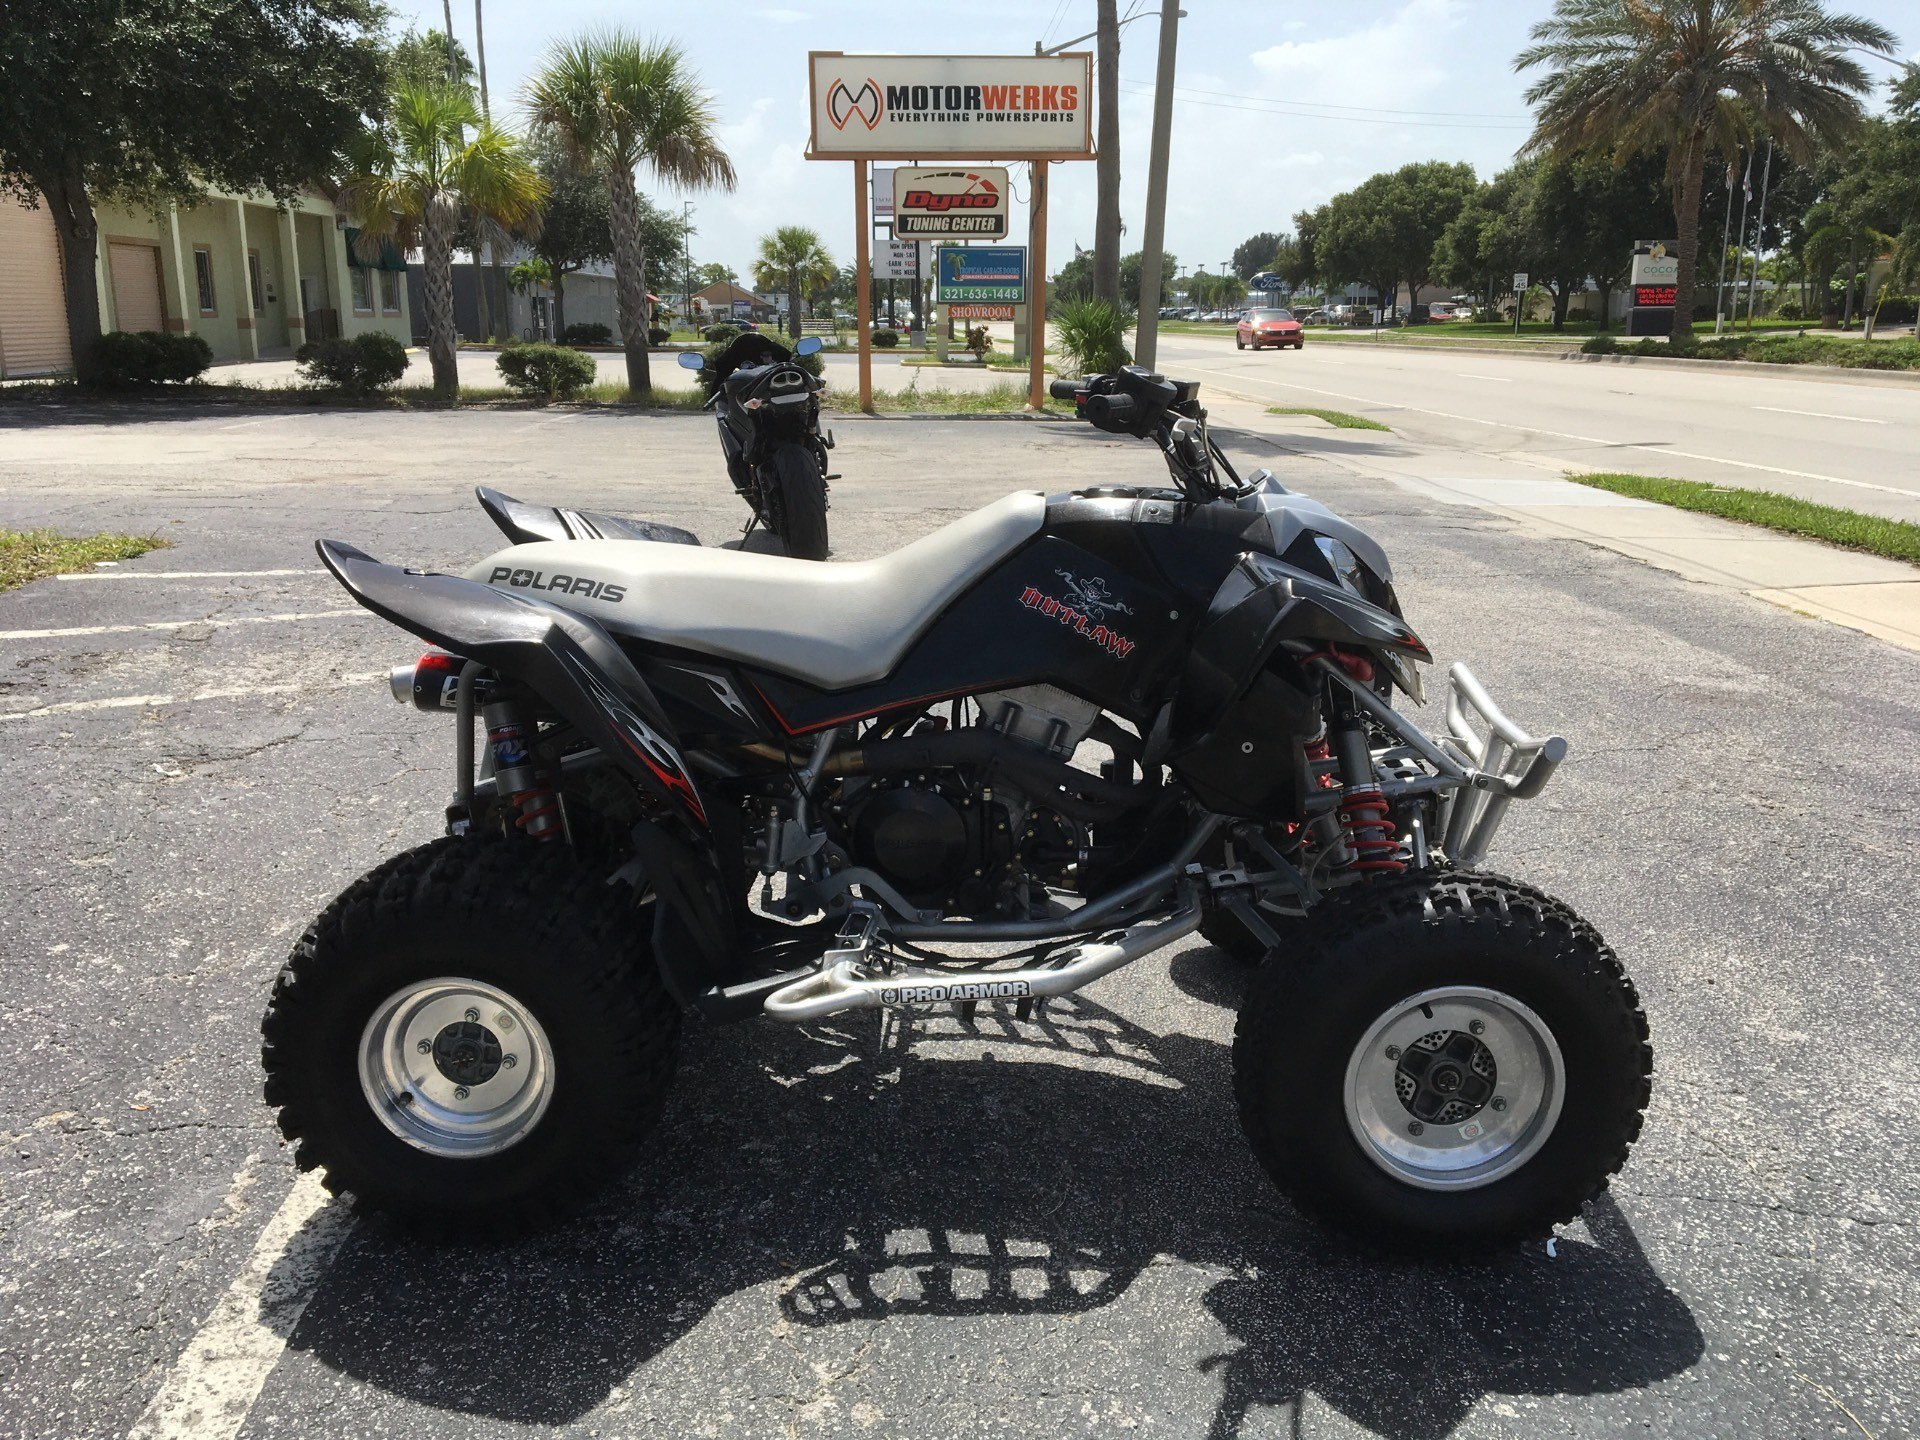 2006 Polaris Outlaw in Cocoa, Florida - Photo 7